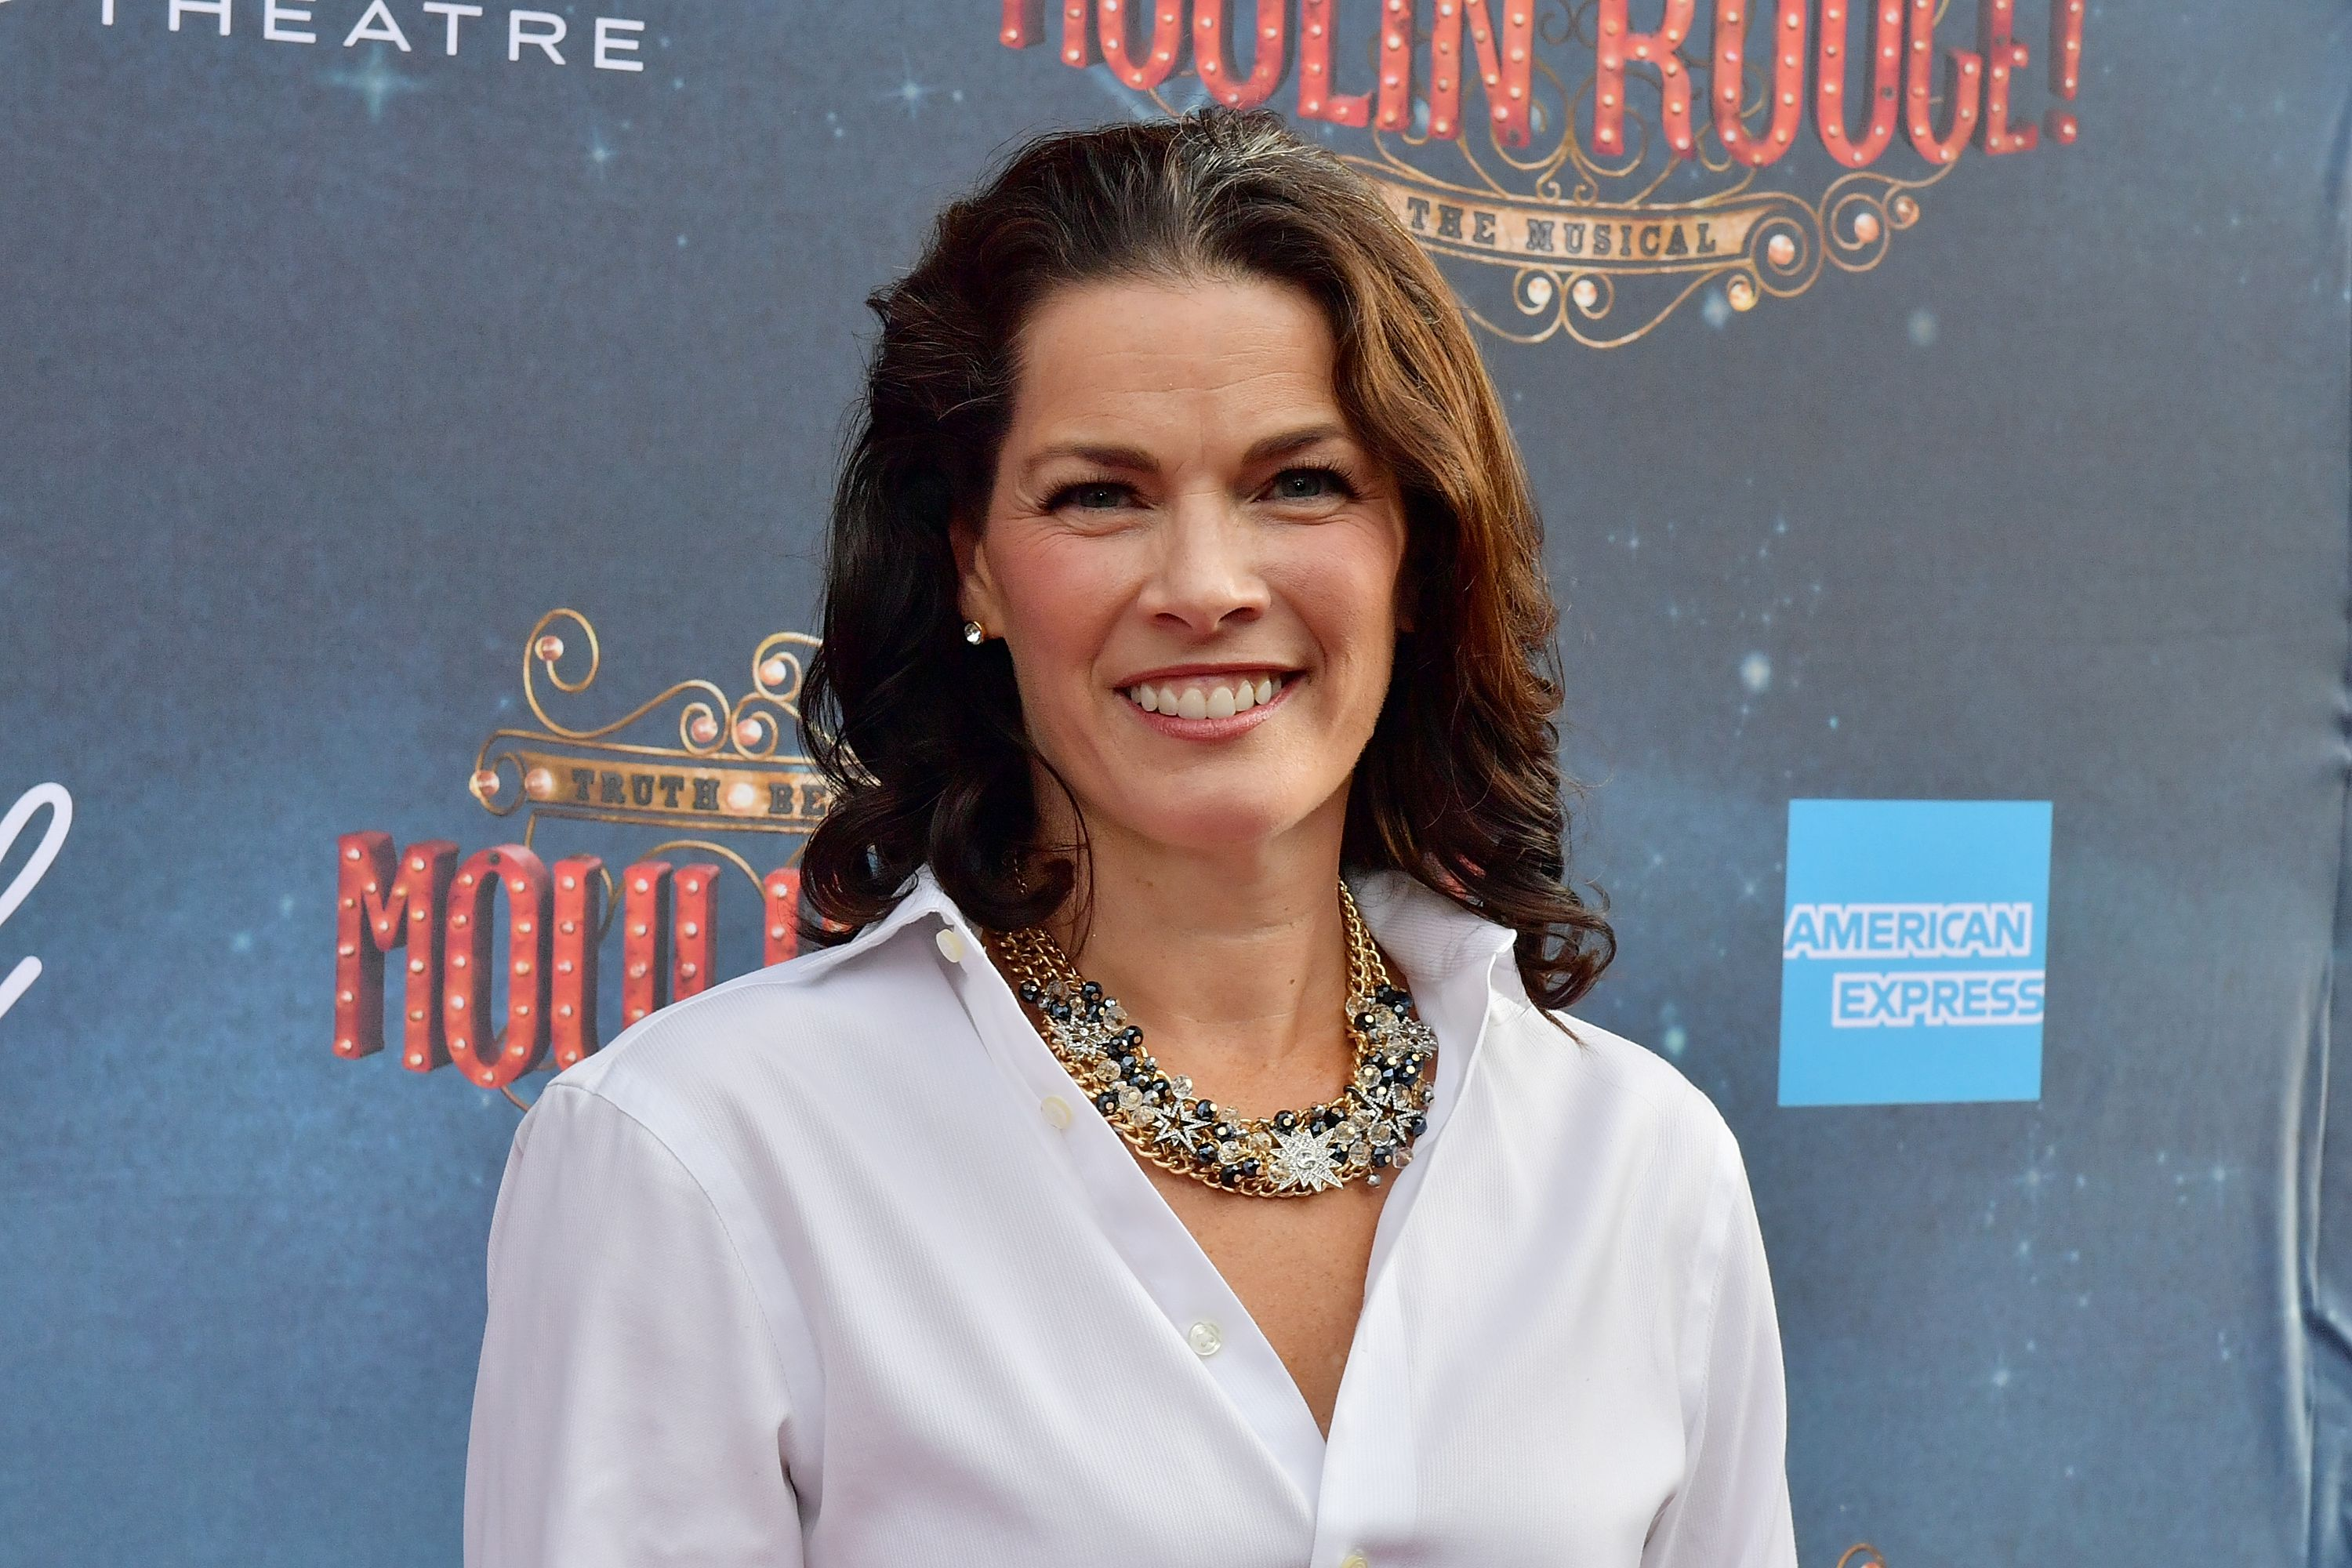 """Olympian Nancy Kerrigan at the grand re-opening of Boston's Emerson Colonial Theatre with the gala performance of """"Moulin Rouge! The Musical"""" at Emerson Colonial Theatre on July 29, 2018   Photo: Getty Images"""